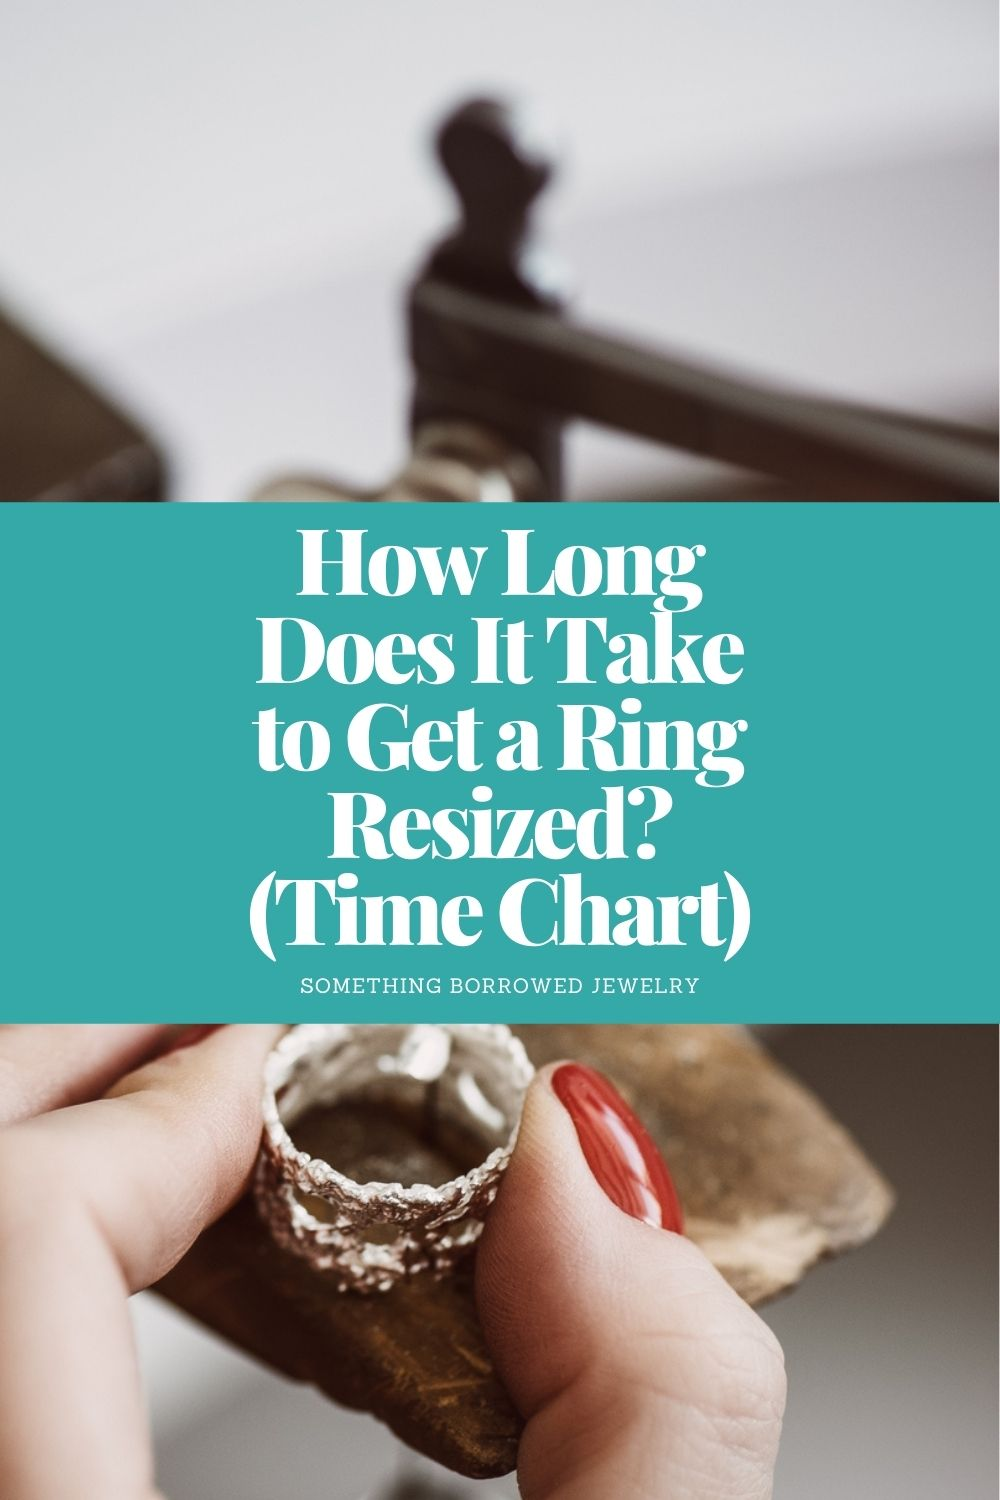 How Long Does It Take to Get a Ring Resized (Time Chart) pin 2